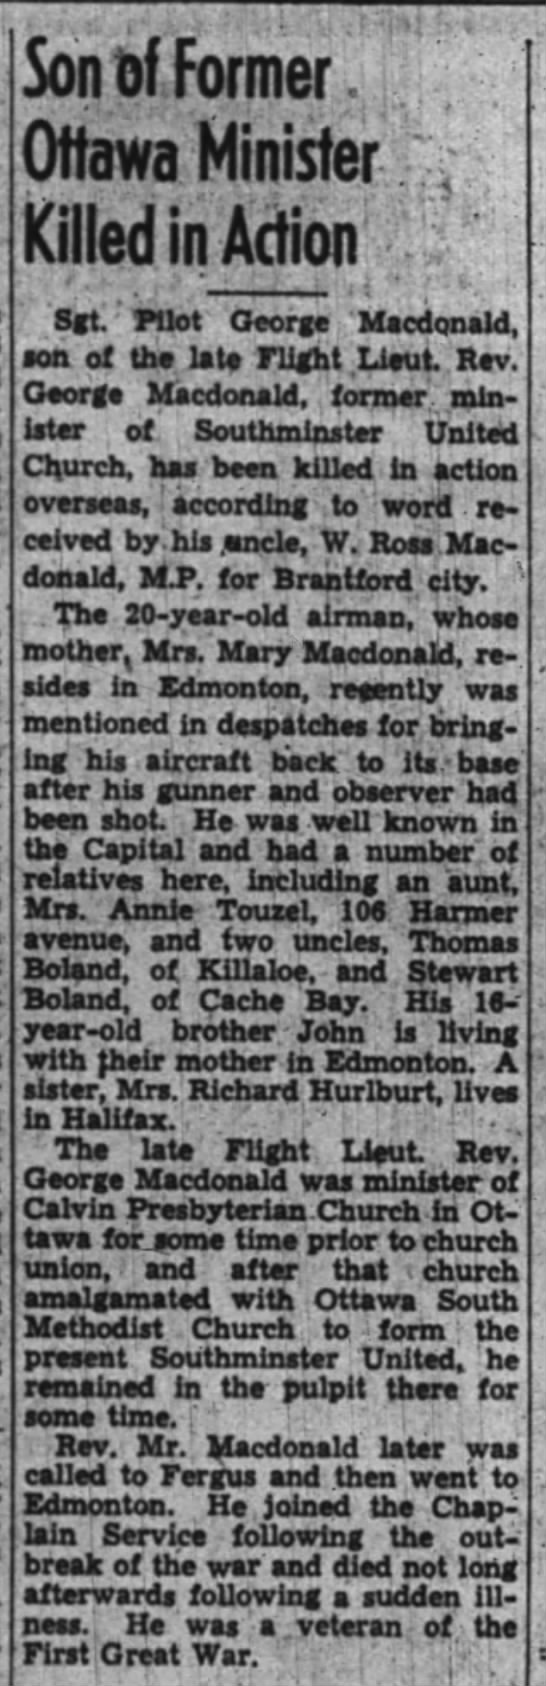 Son of Former Ottawa Minister Killed in Action - Sgt. Pilot George Macdonald -